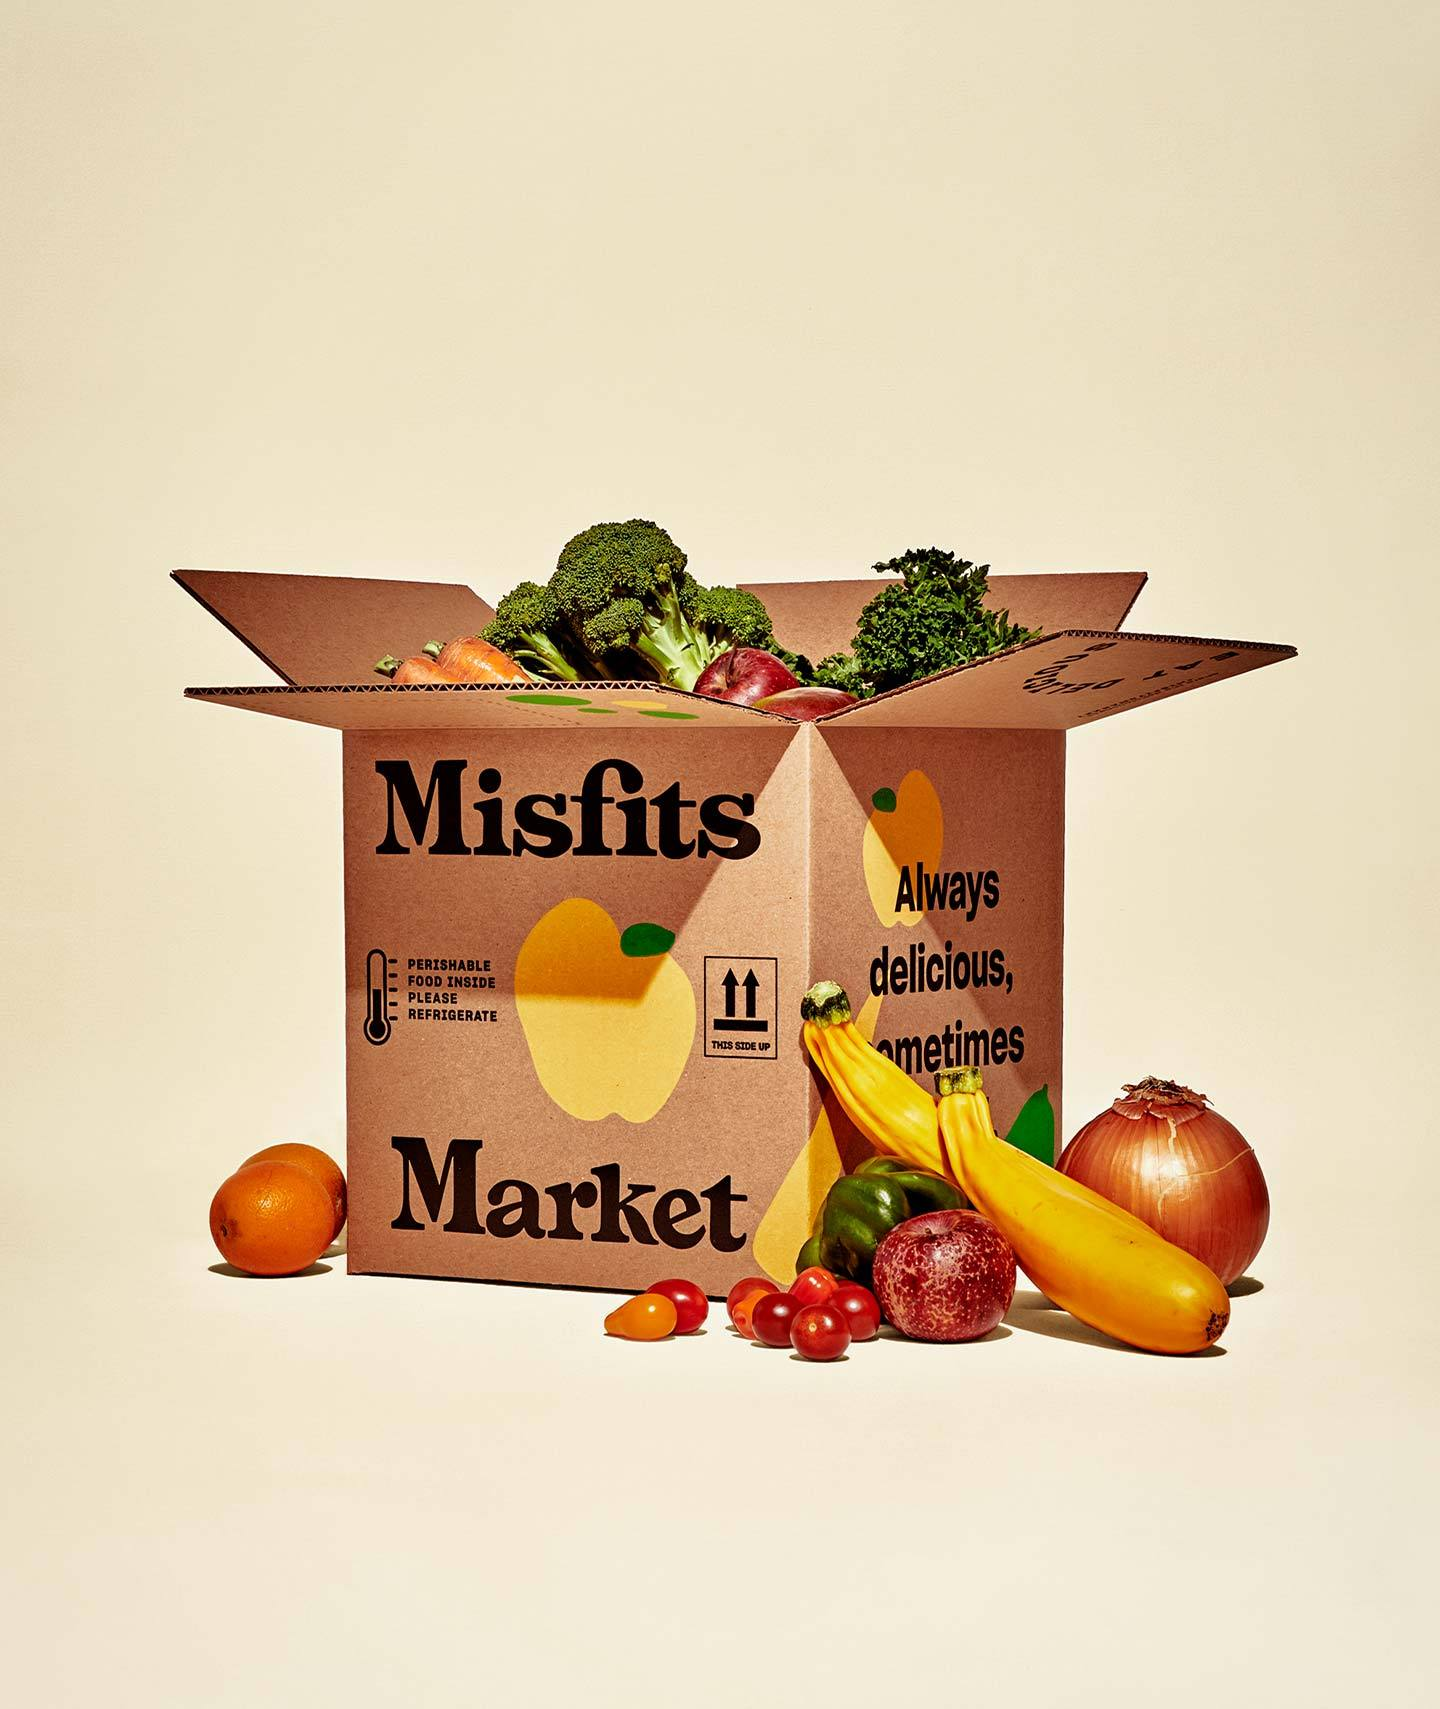 Misfit Market Marketing Collateral